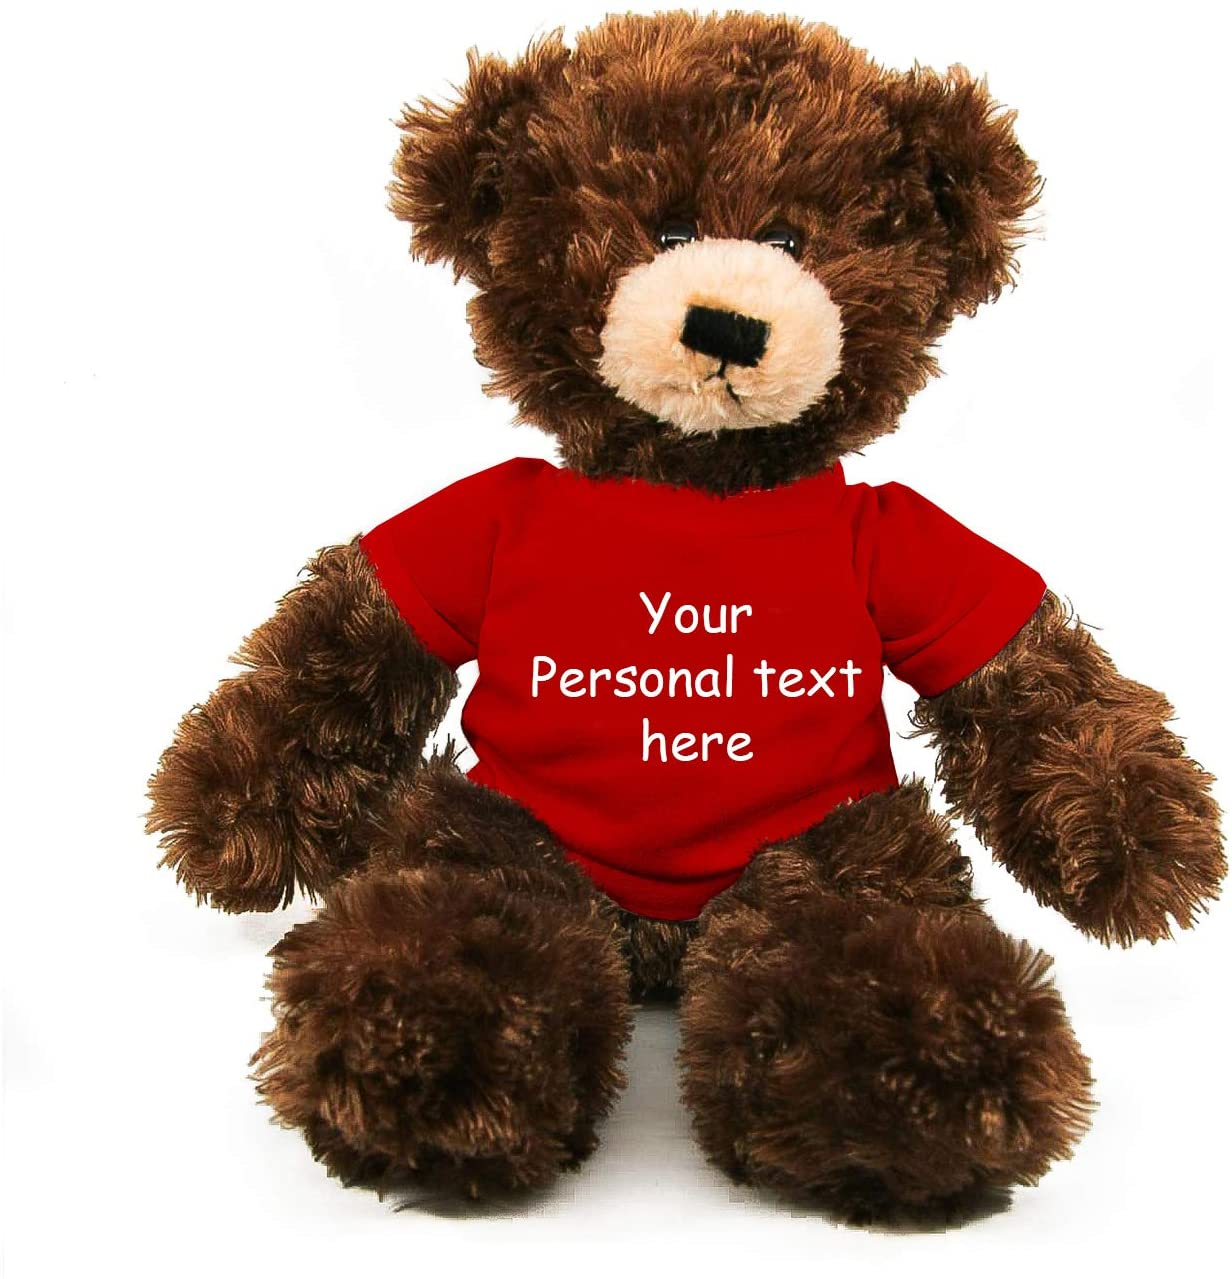 Plushland Chocolate Brandon Teddy Bear 12 Inch, Stuffed Animal Personalized Gift - Custom Text on - Great Present for Mothers Day, Valentine Day, Graduation Day, Birthday (Red Shirt)